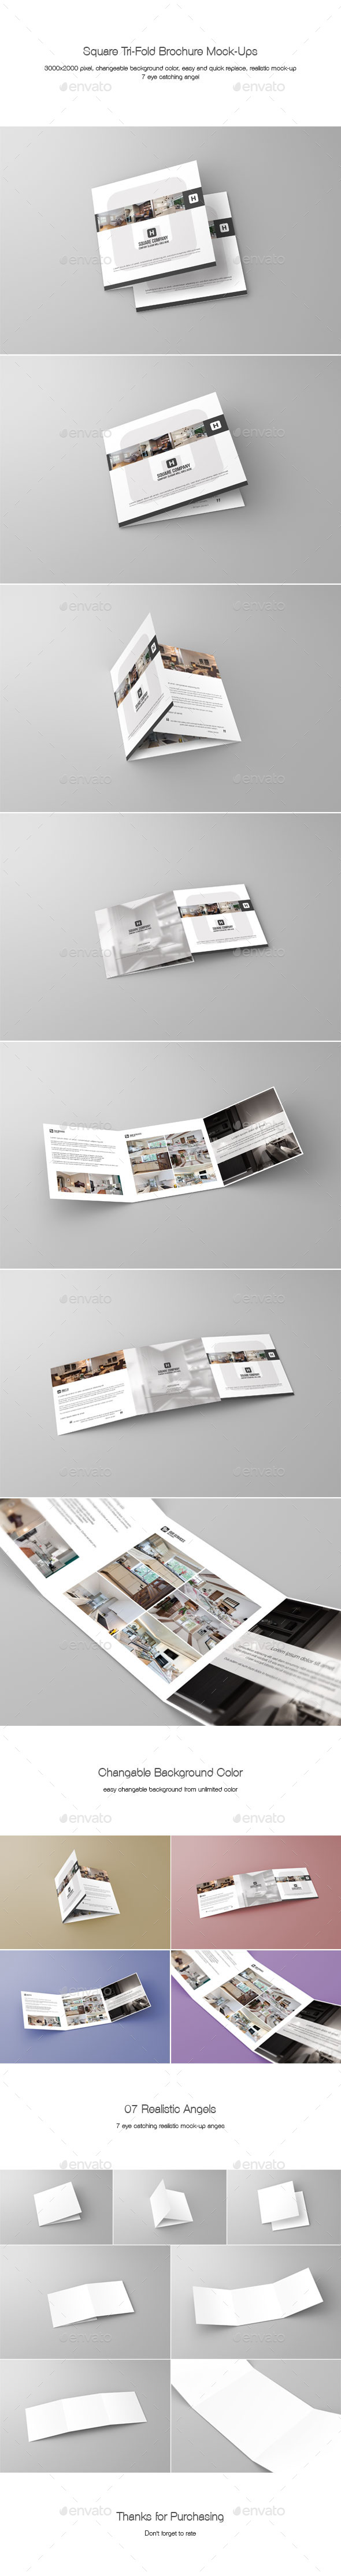 GraphicRiver Square Tri-Fold Brochure Mock-Ups 9935230